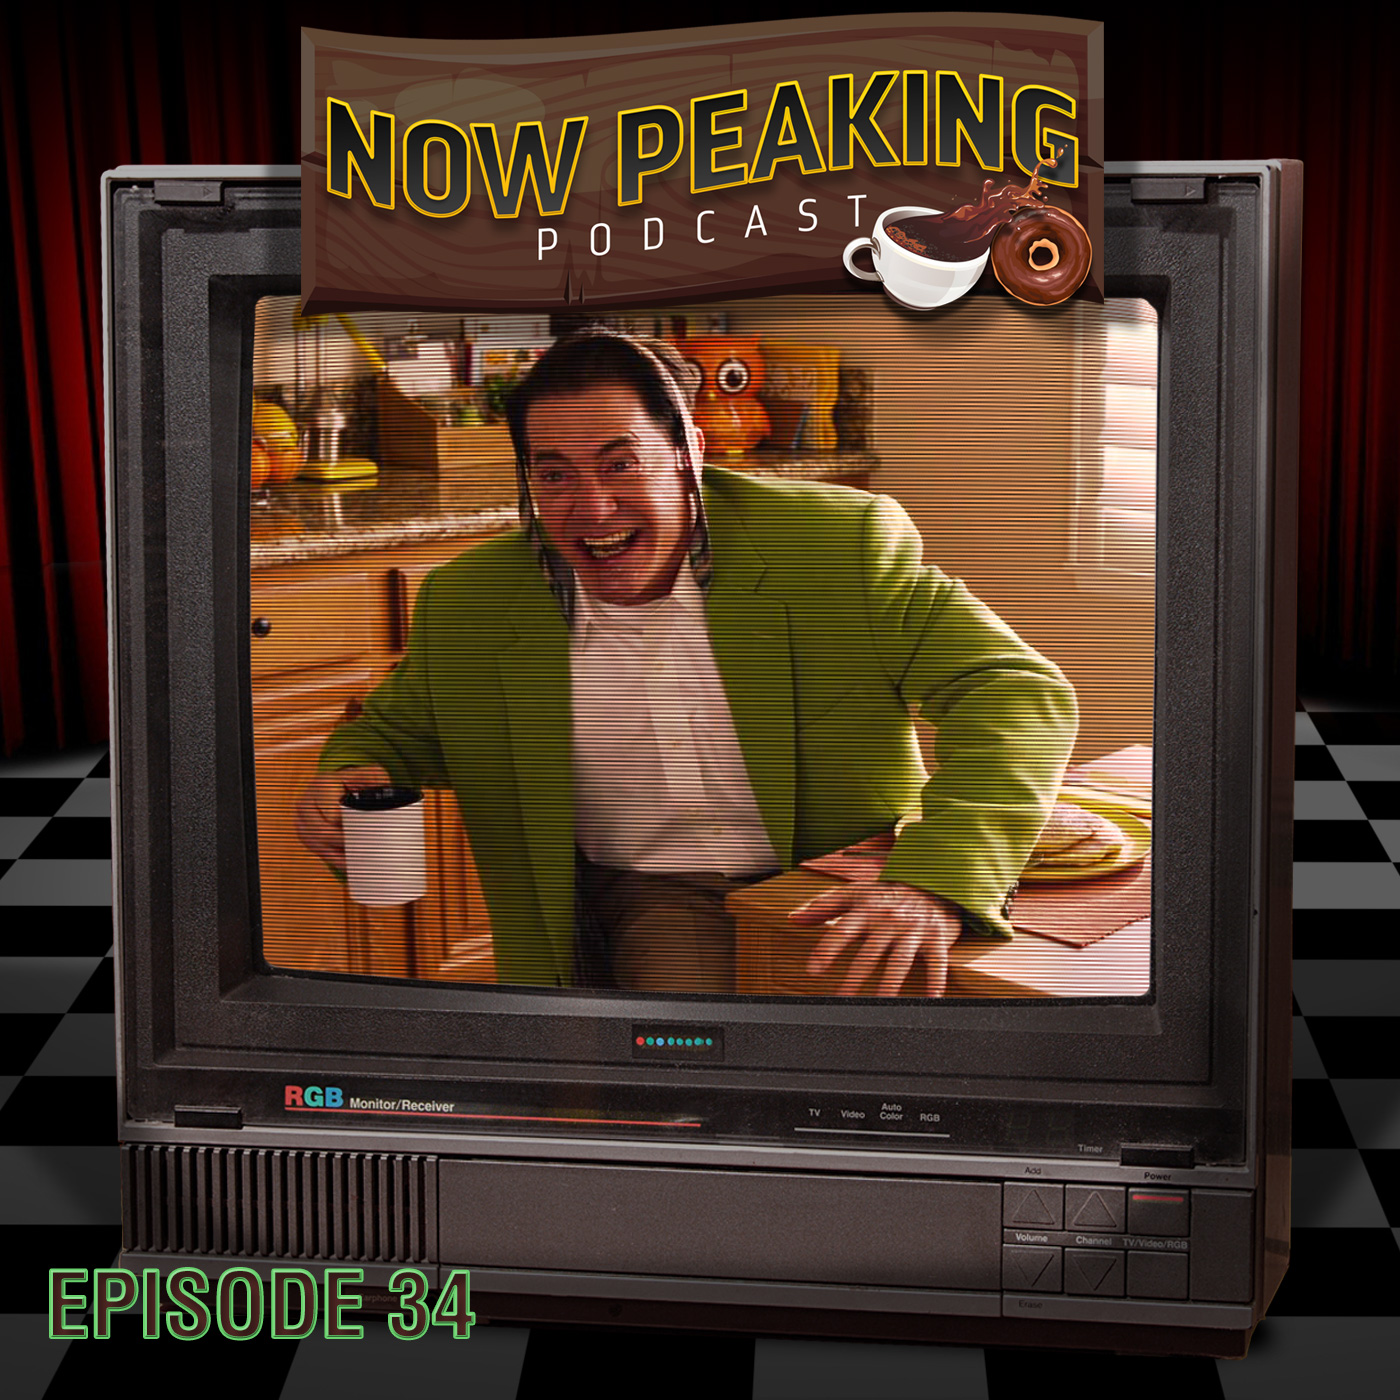 Now Peaking Episode 34: …brings back some memories.  - For Annual Subscribers